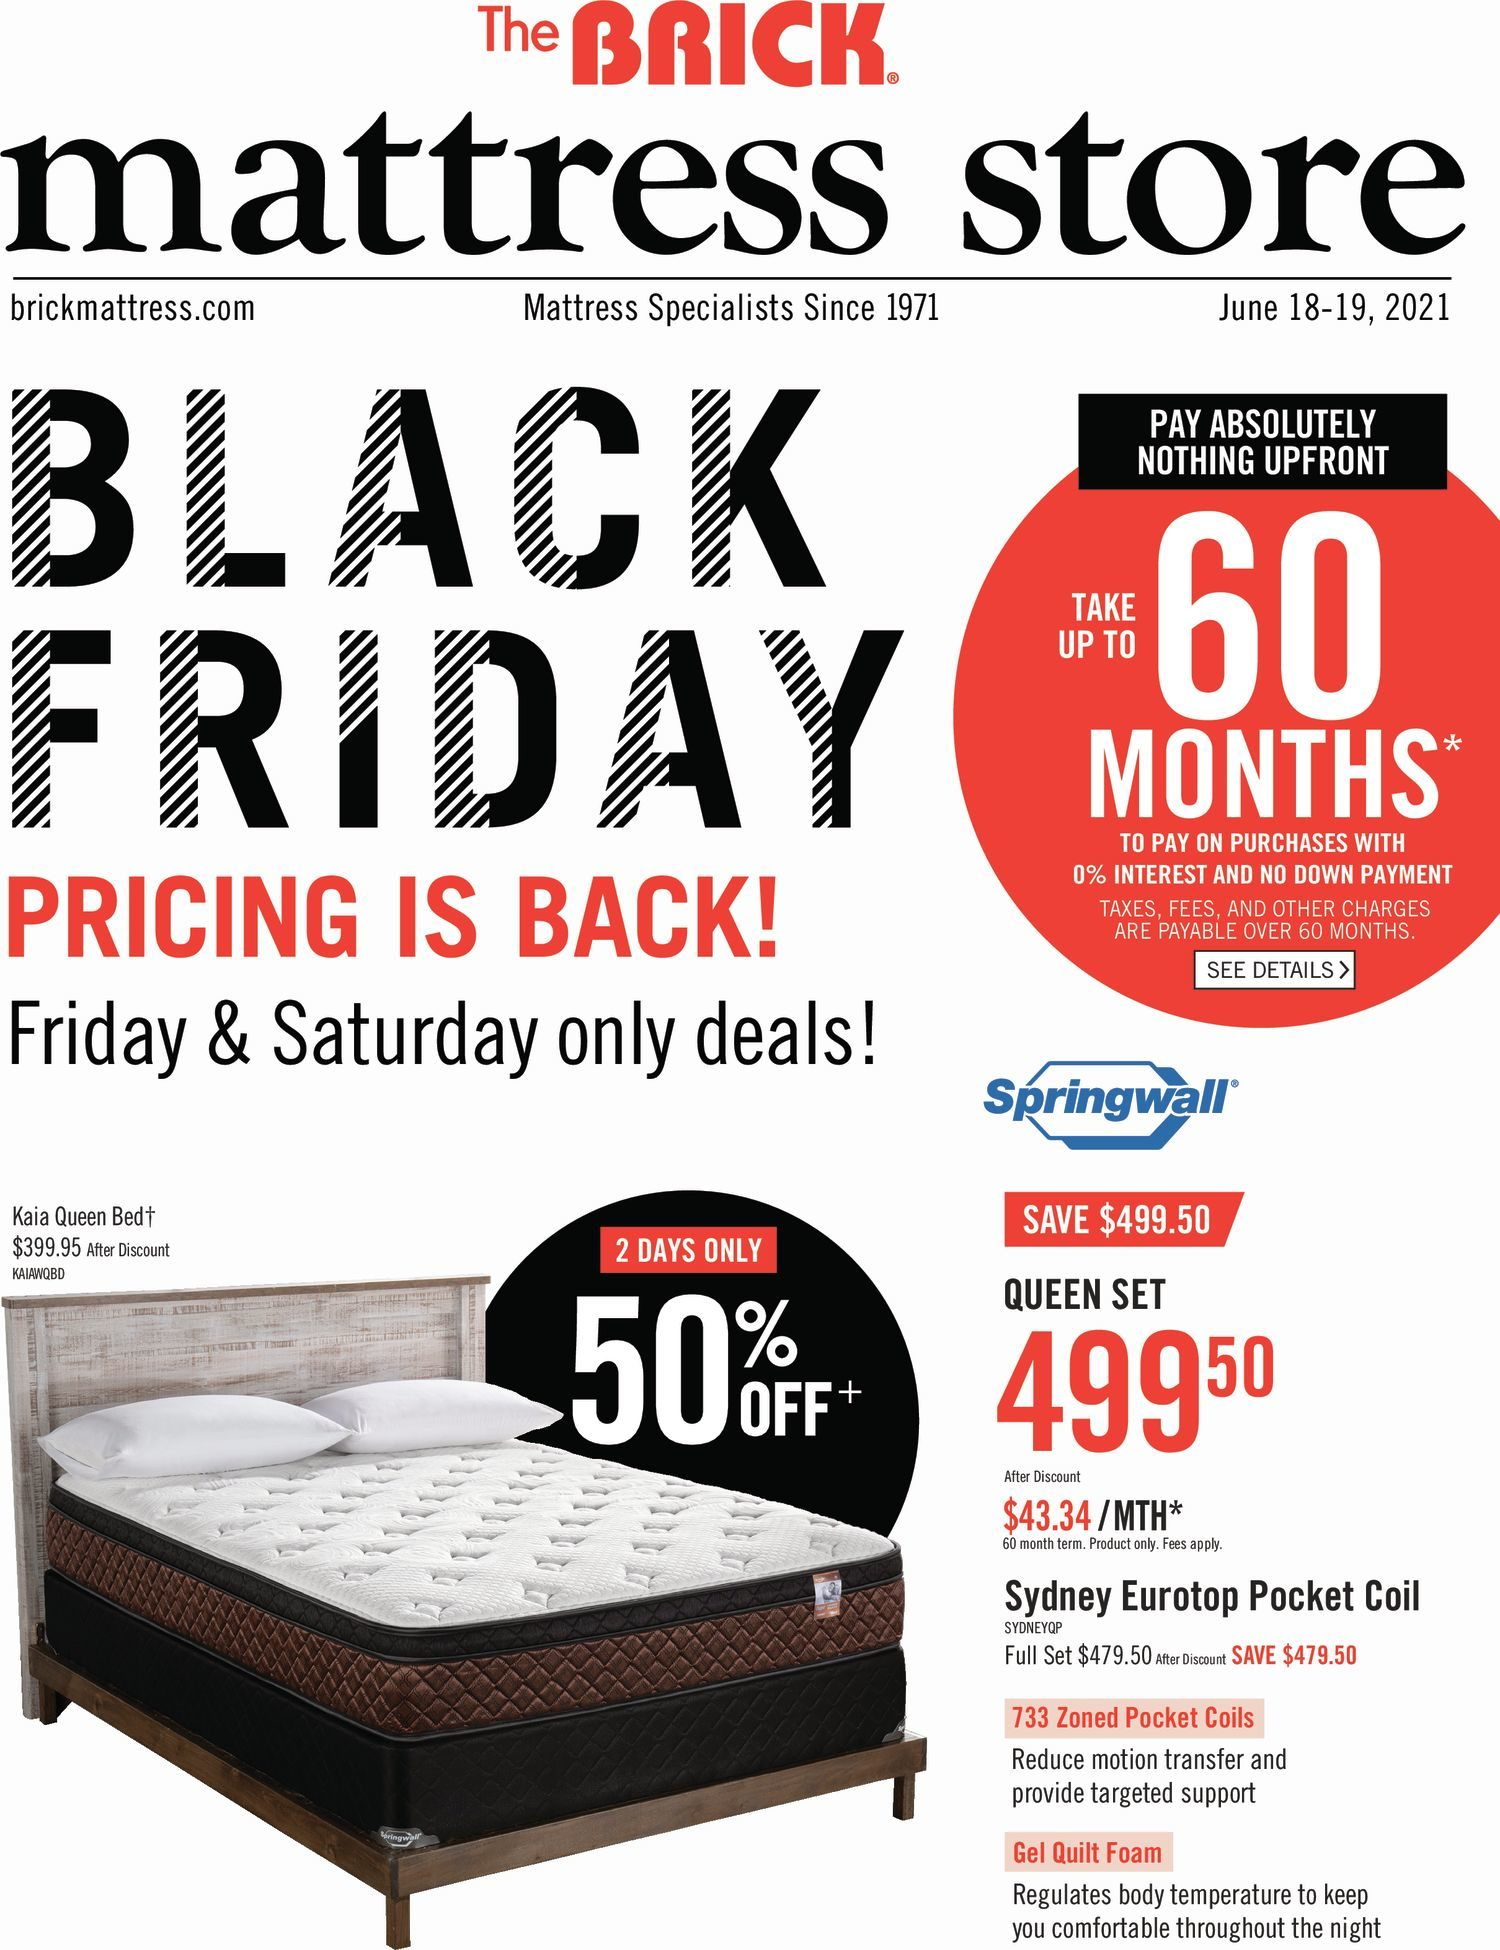 The Brick - Mattress Store - Black Friday Pricing is Back!